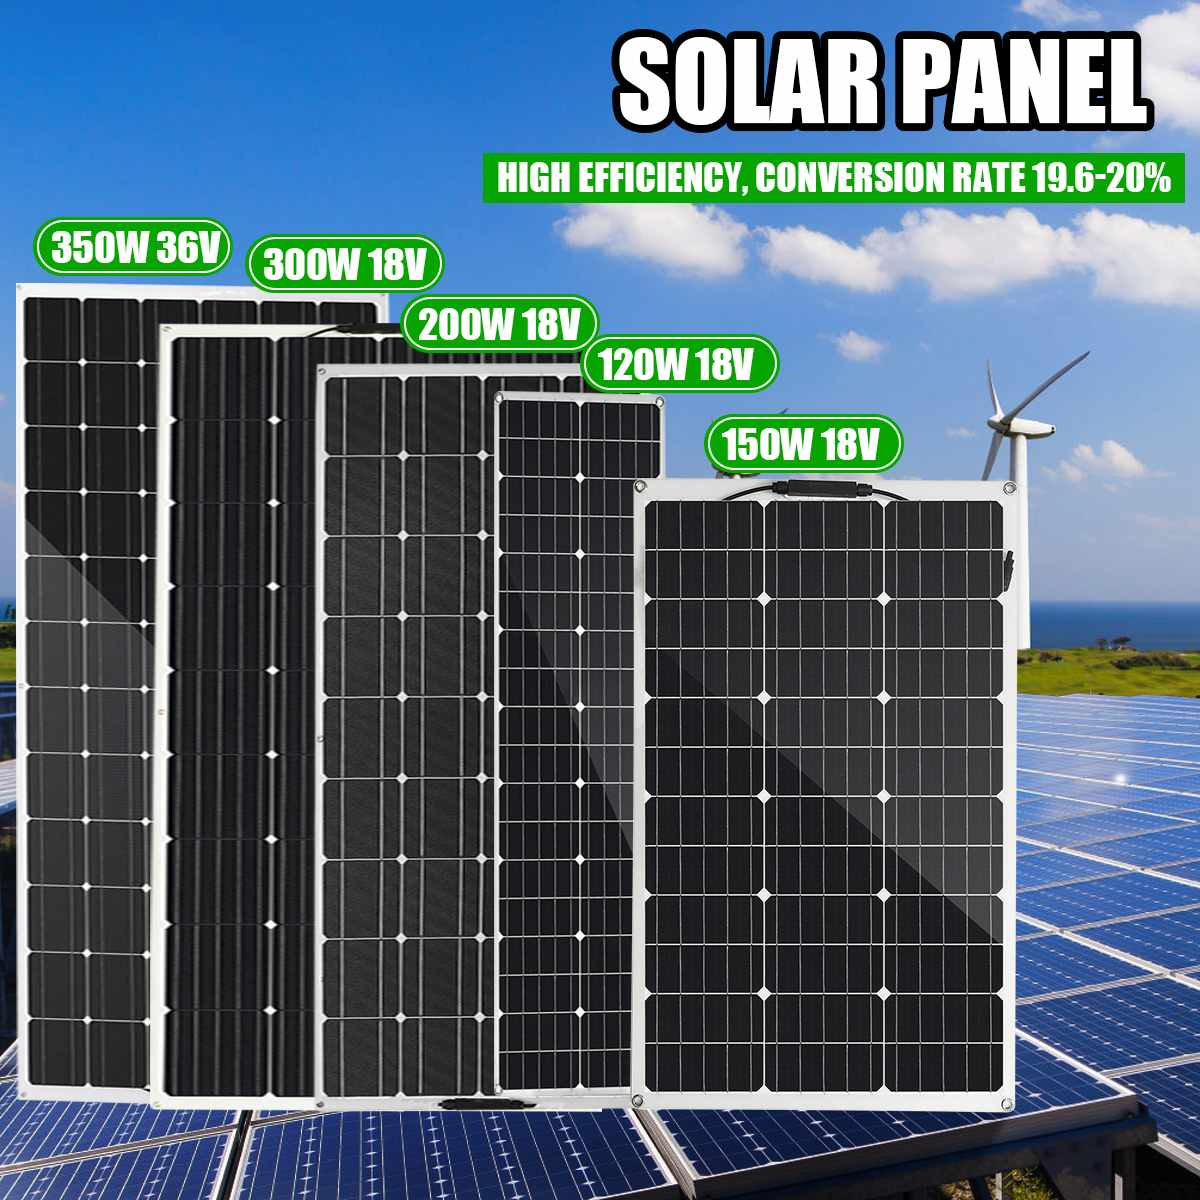 18V 36V Semi-flexible <font><b>Solar</b></font> <font><b>Panel</b></font> 120W/150W/200W/<font><b>300W</b></font> USB <font><b>Solar</b></font> Cell DIY Module Outdoor Connector Battery Charger for RV Boat image